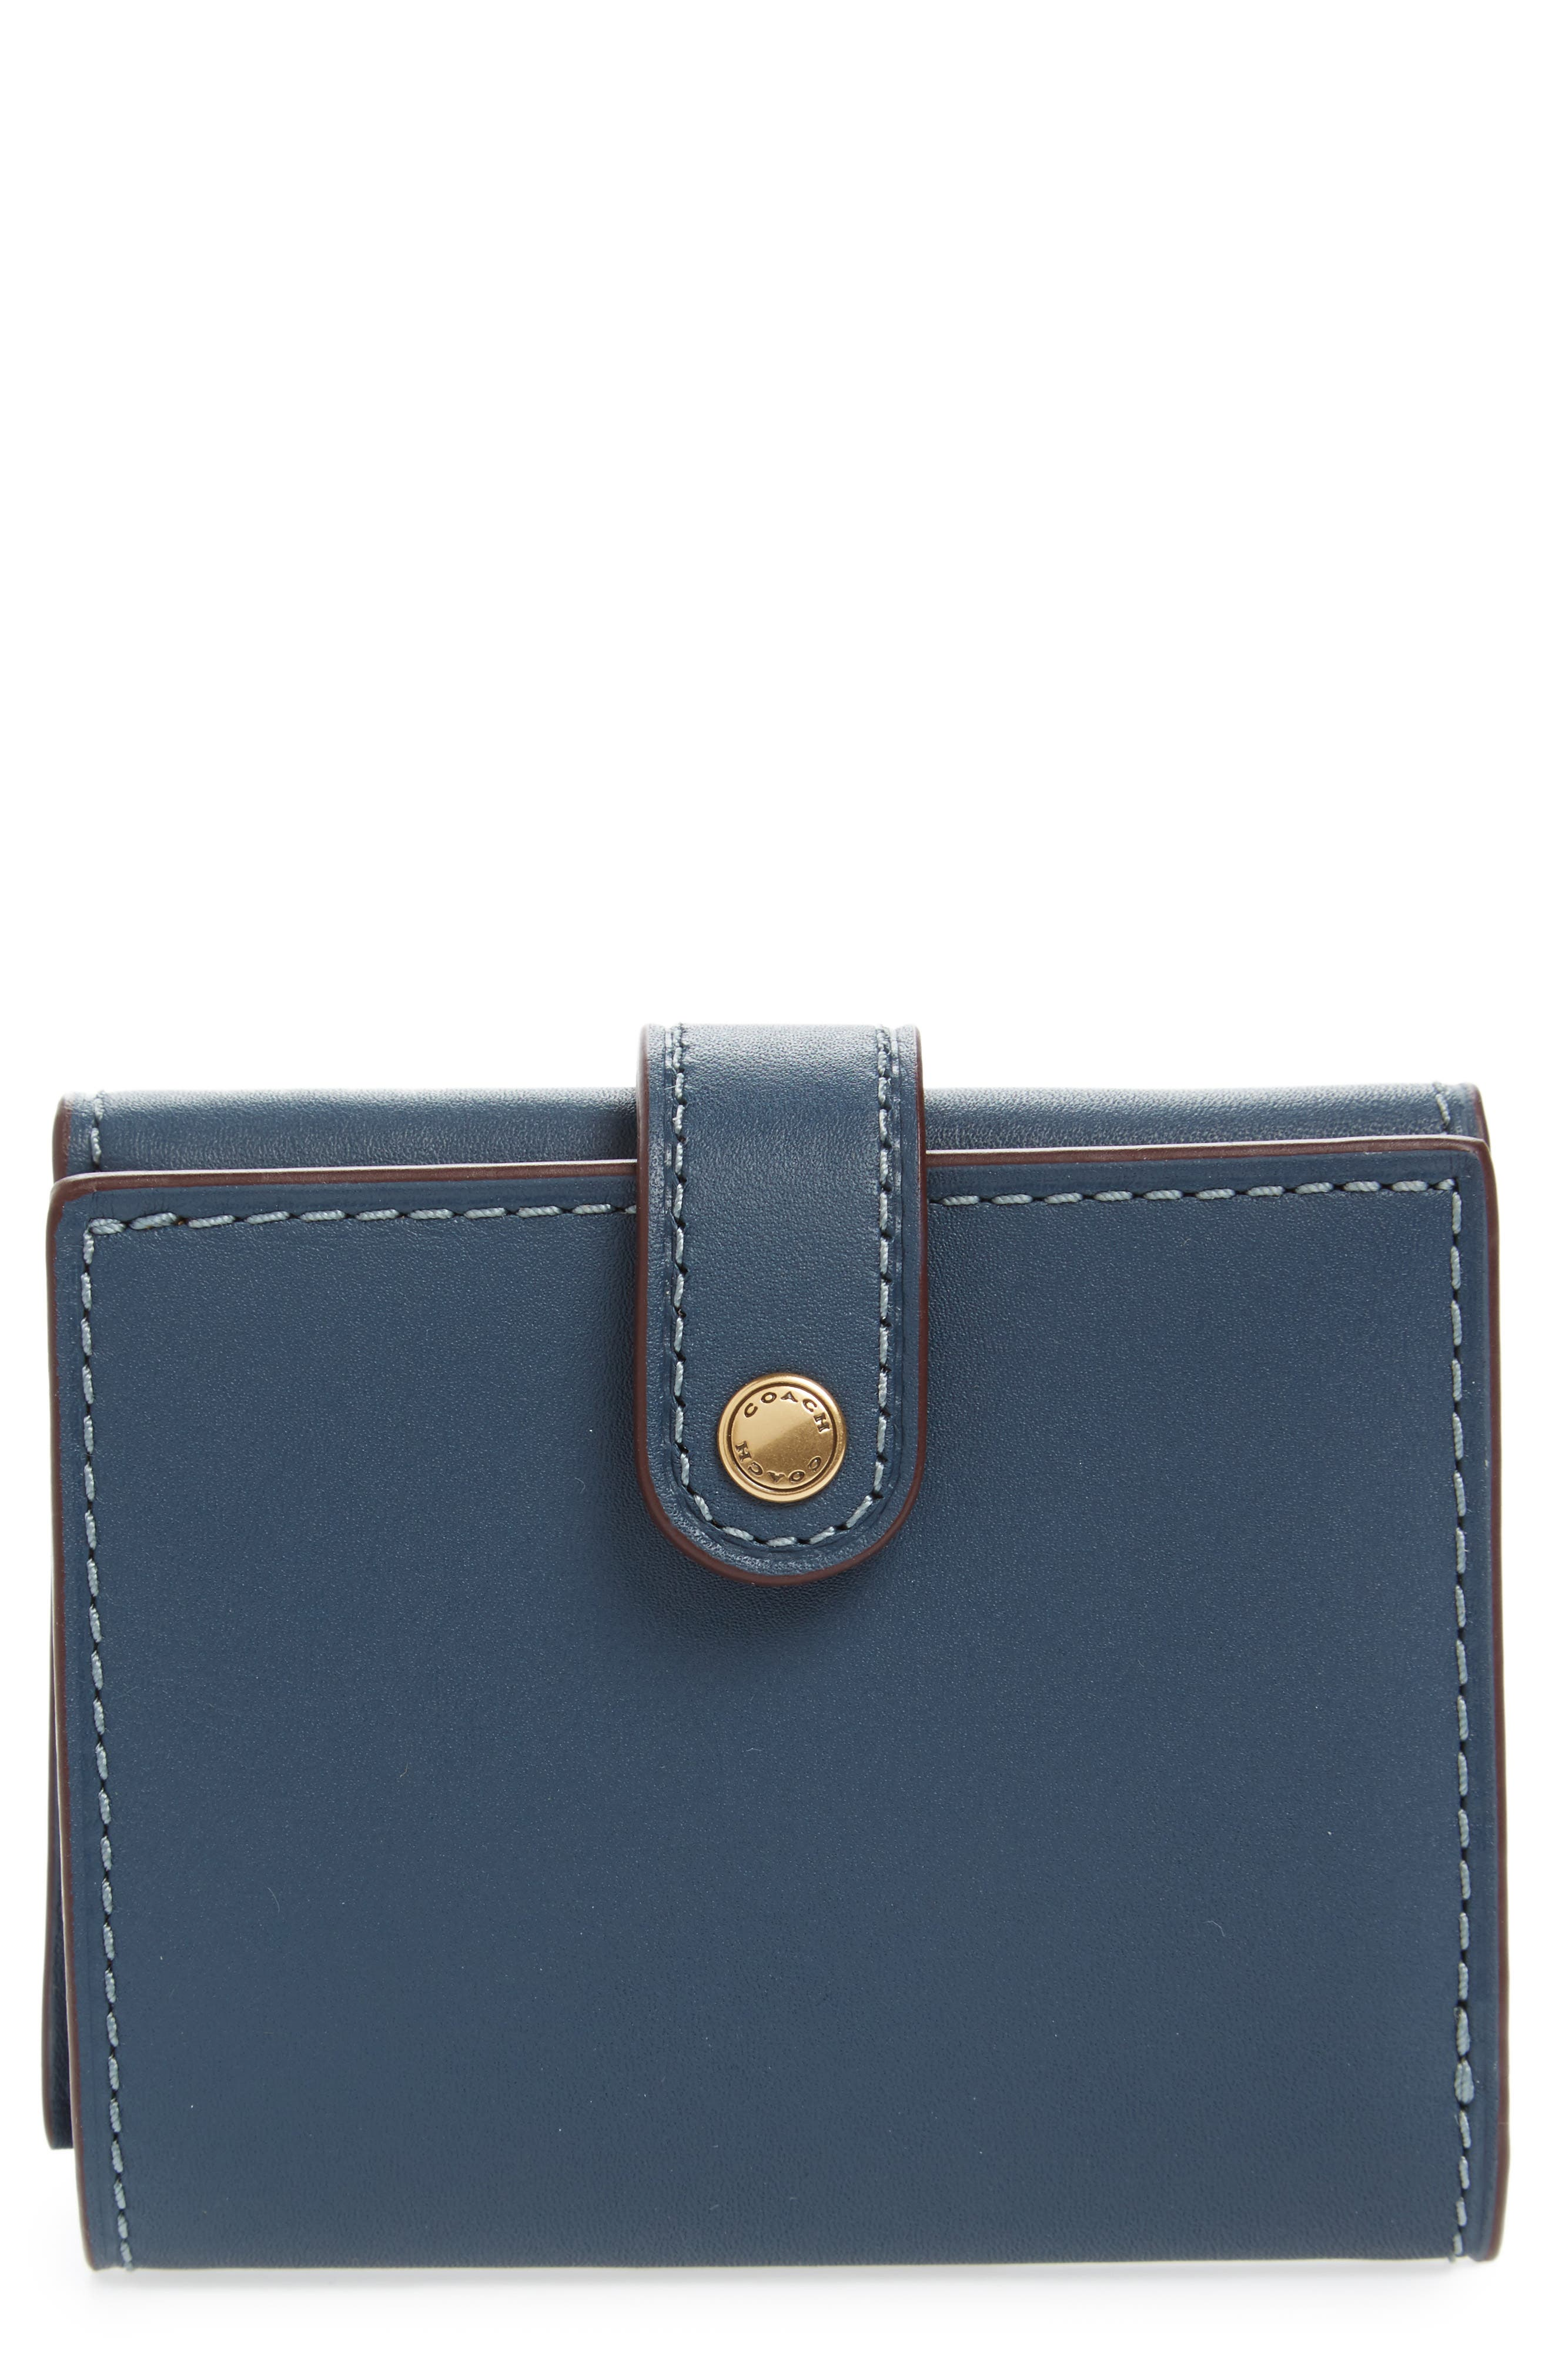 Alternate Image 1 Selected - COACH 1941 Small Leather Trifold Wallet